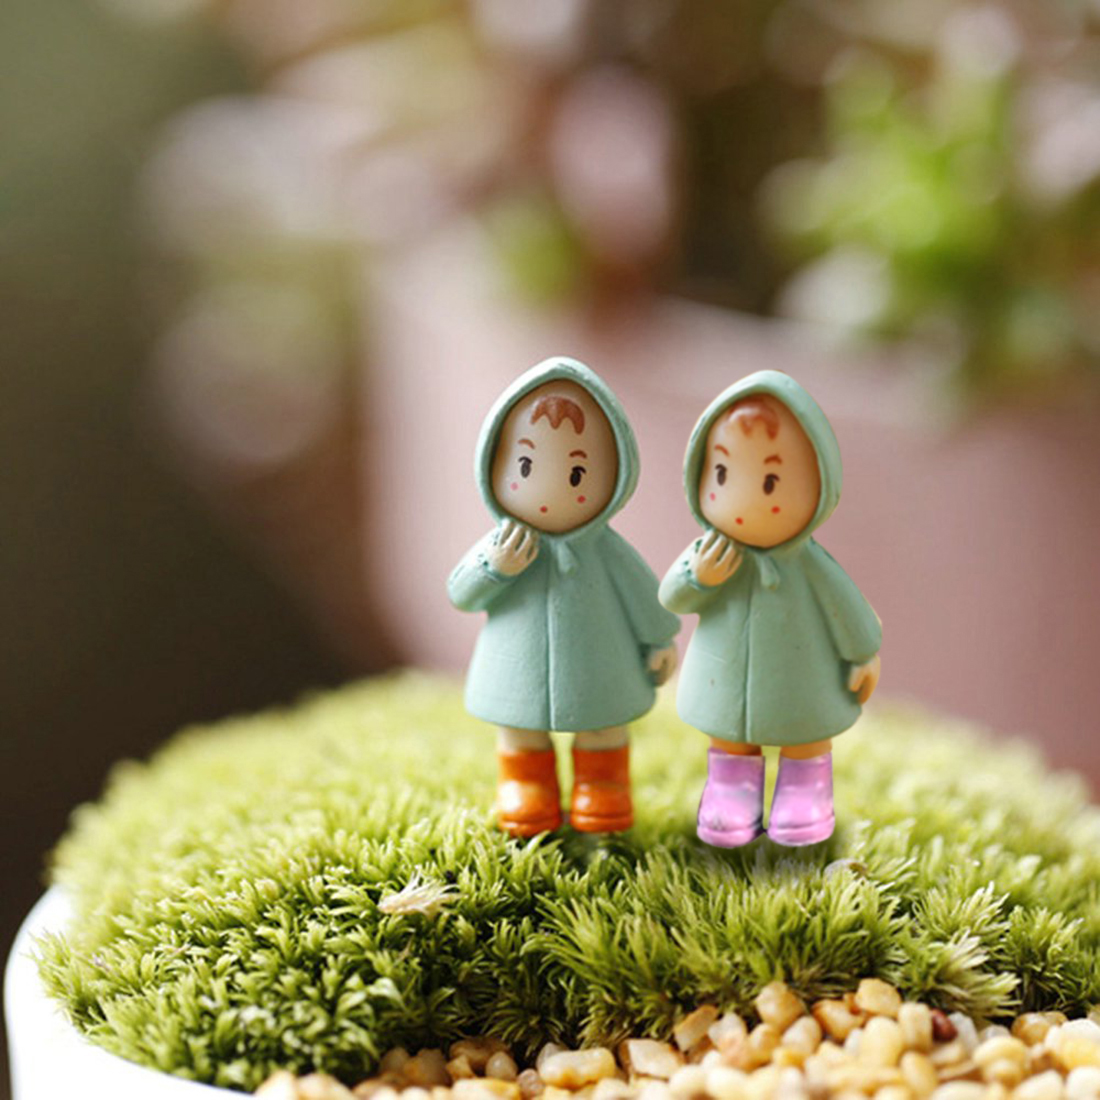 Hot Sale 1PCS Cute Mini Figurines Miniature Girl Mei Resin Crafts Ornament Fairy  Garden Gnomes Moss Terrariums Home Decorations In Figurines U0026 Miniatures ...